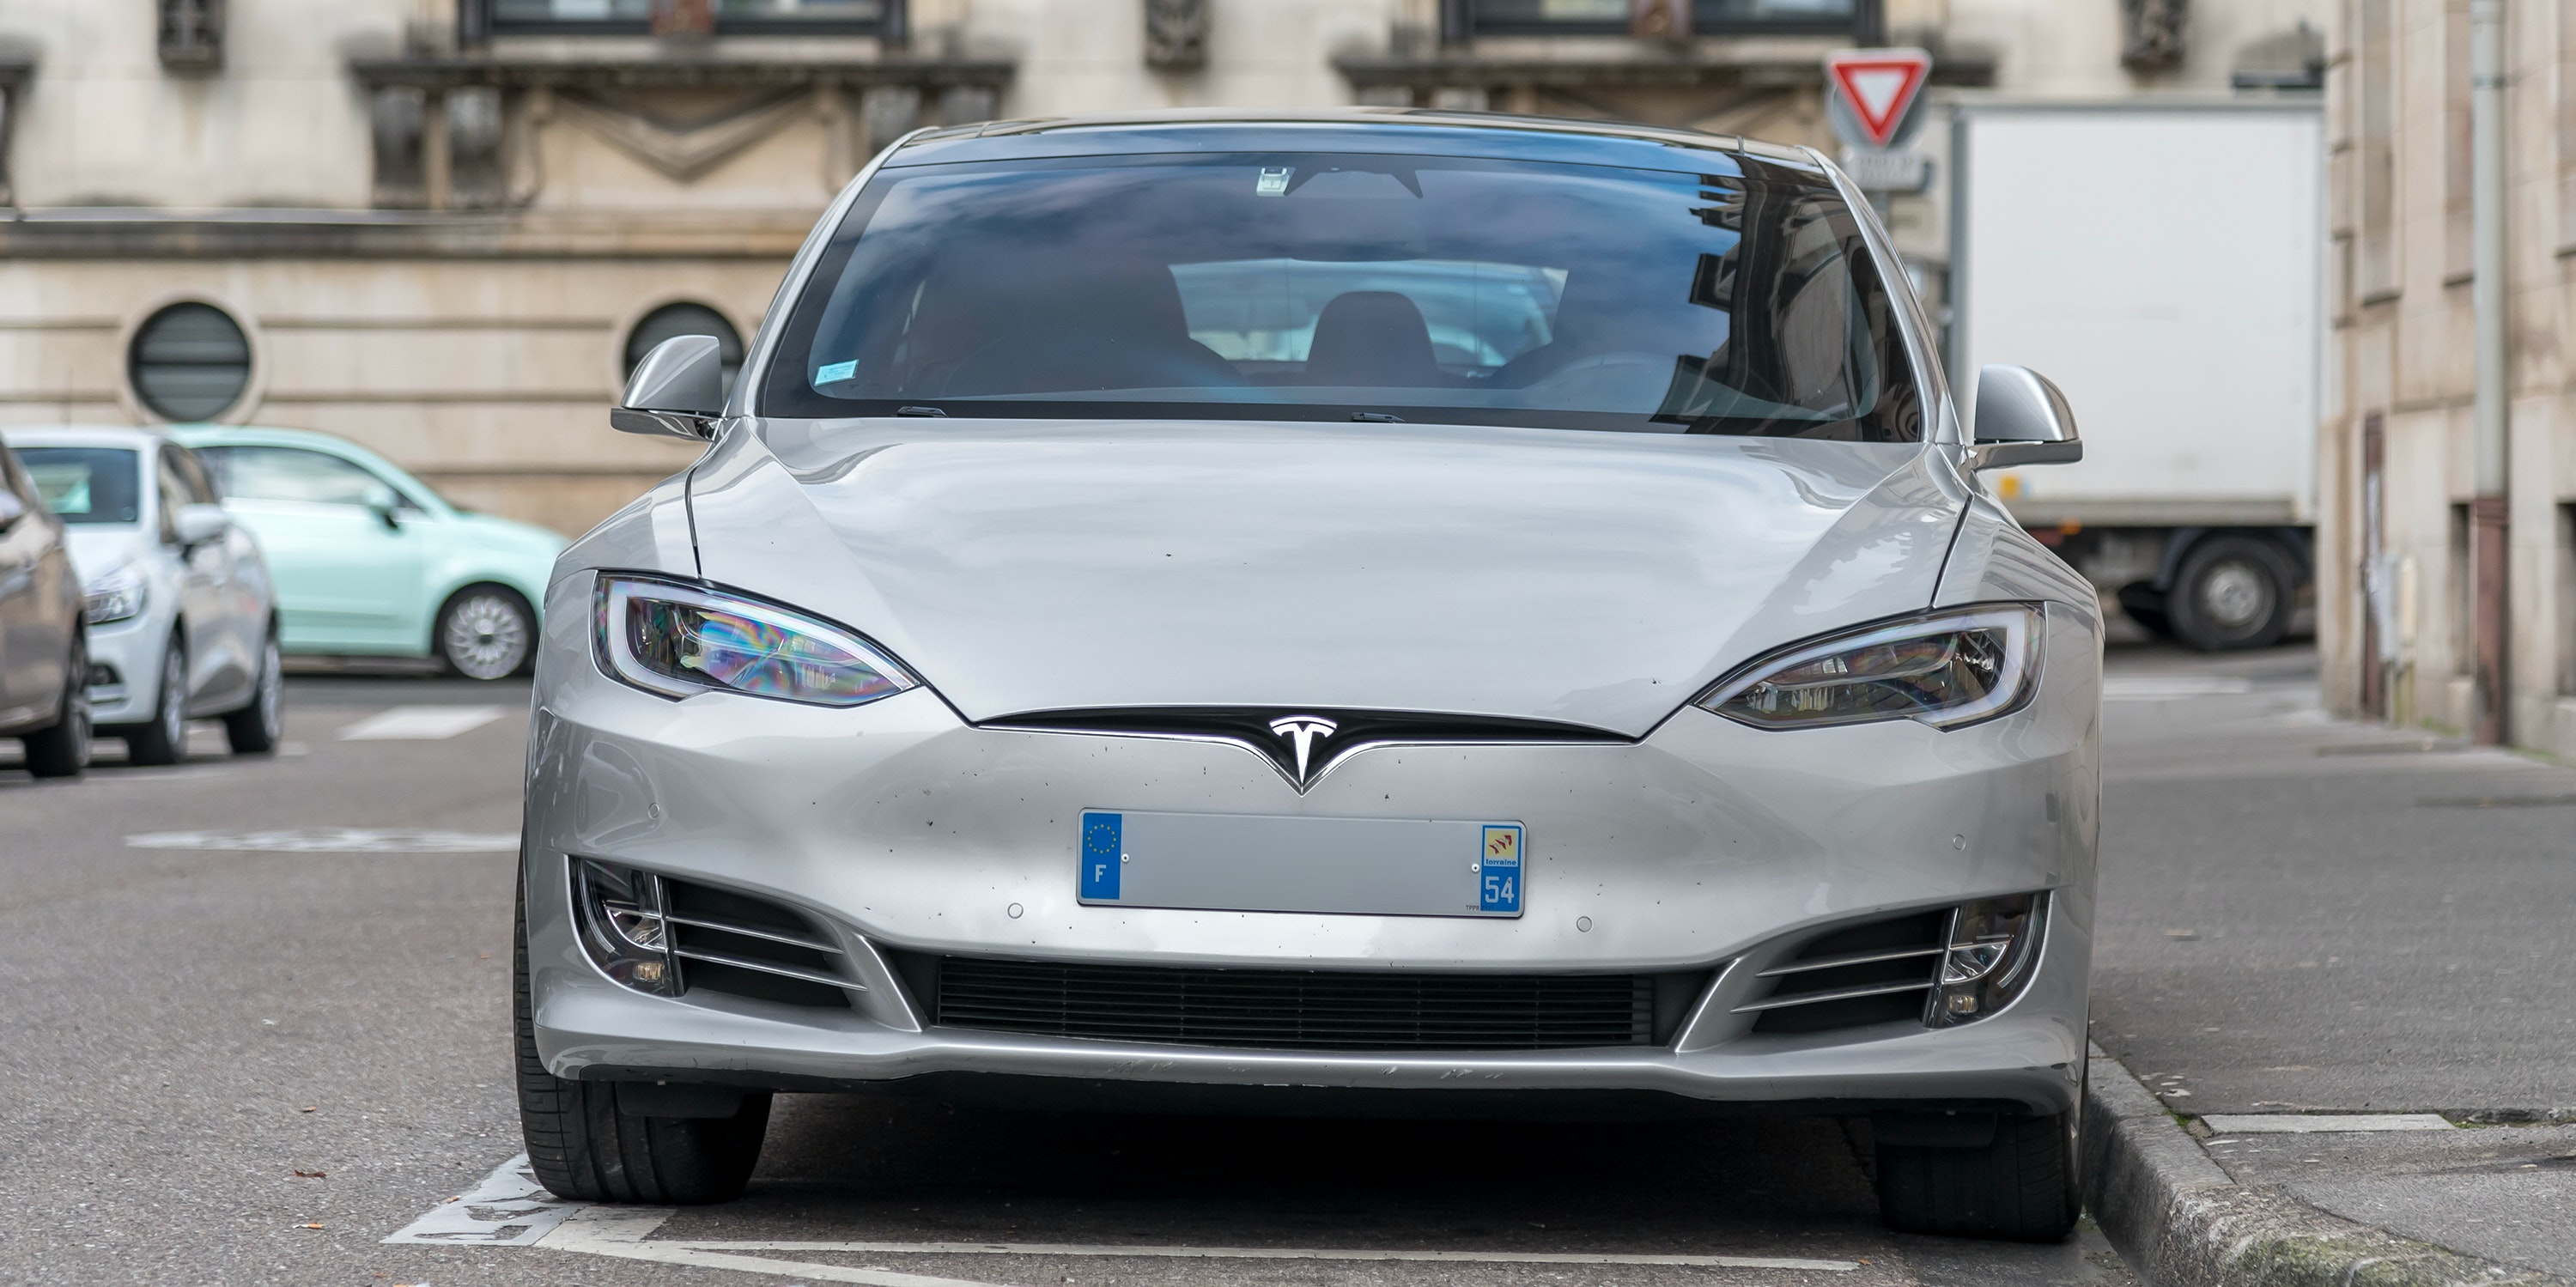 Tesla Model S: How New Car Reaches 370 Miles Range With Same Size Battery